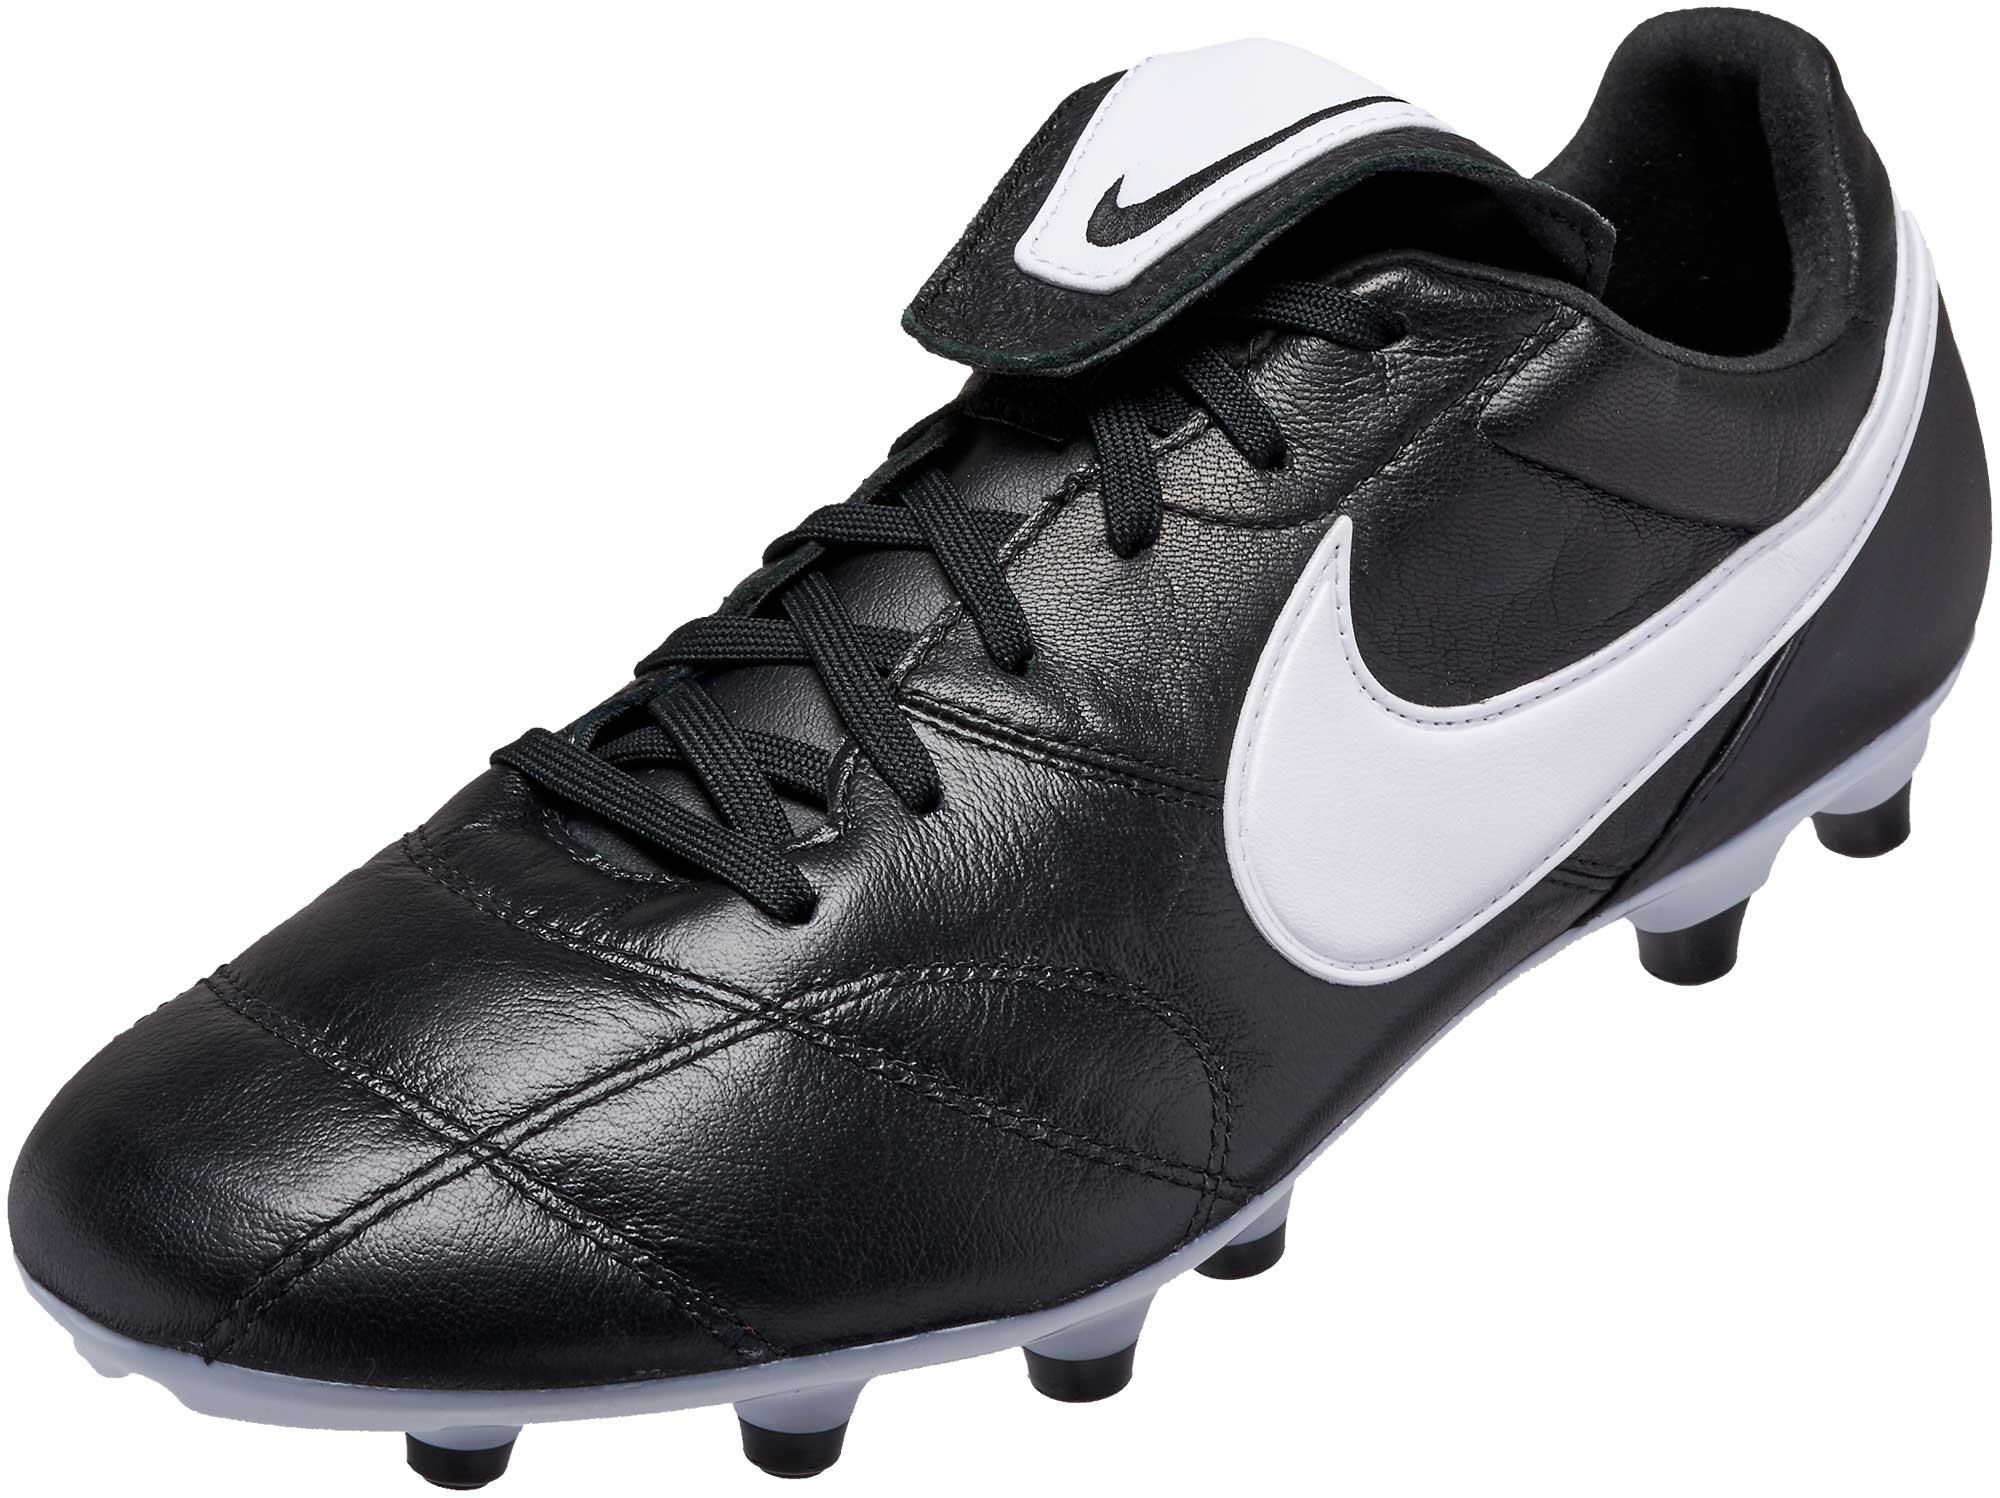 New Soccer Shoes From Nike